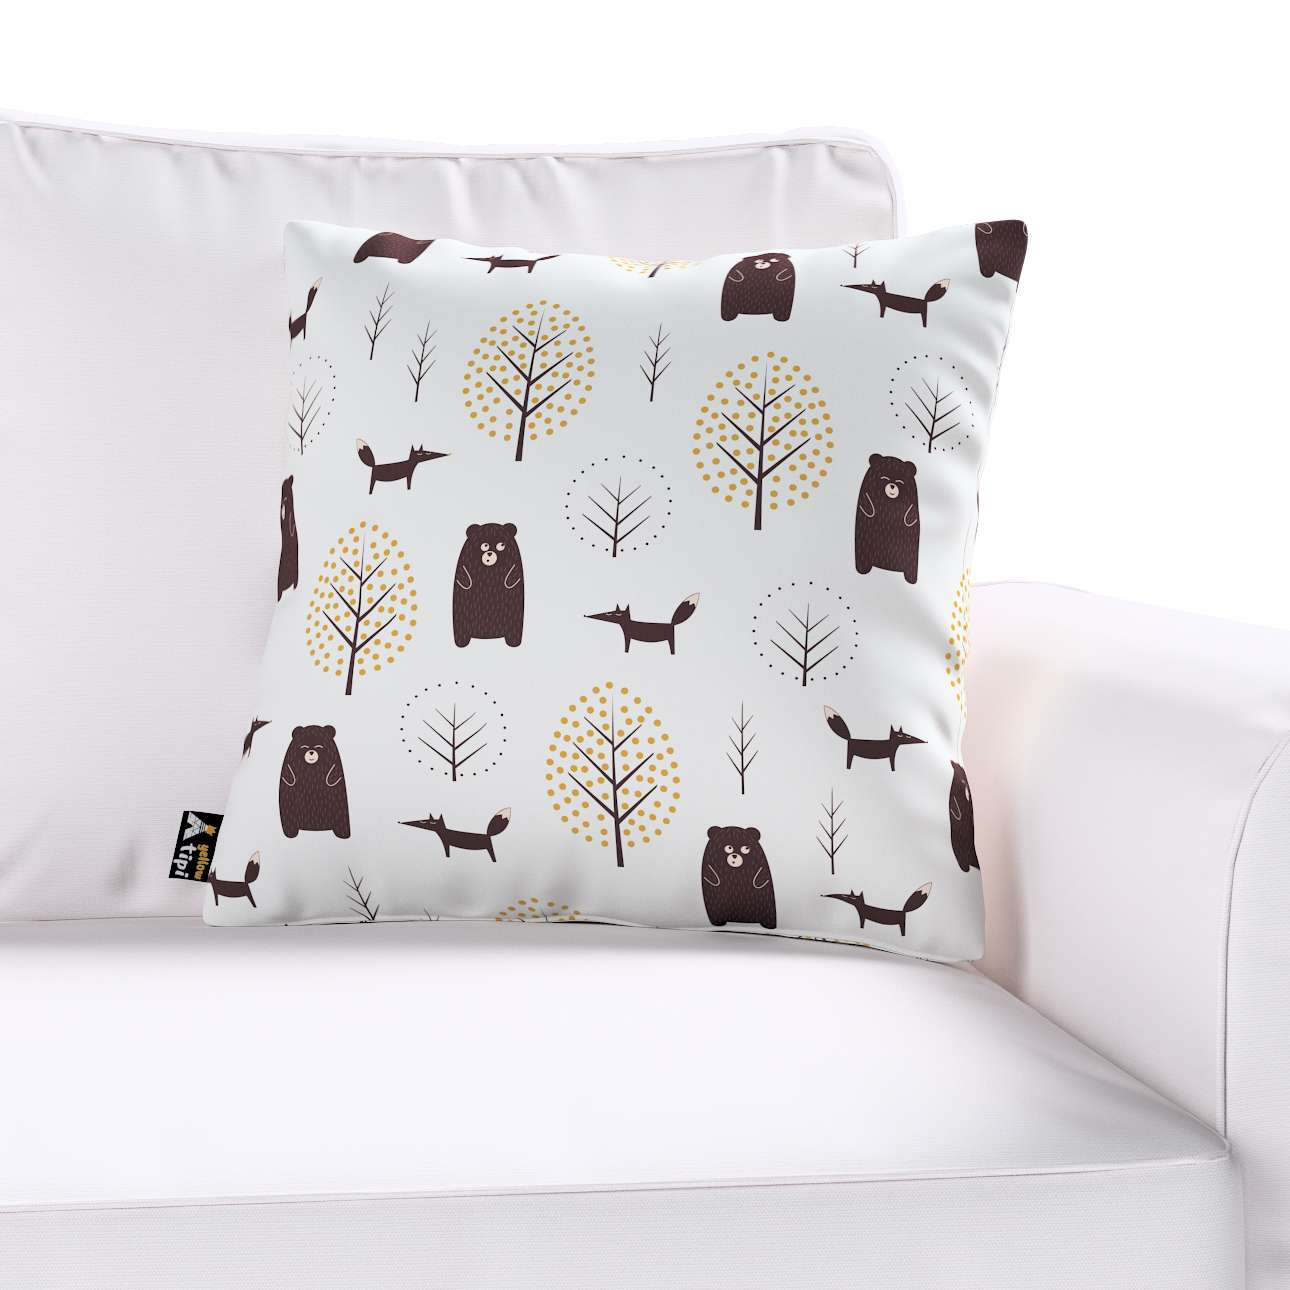 Milly cushion cover in collection Magic Collection, fabric: 500-19